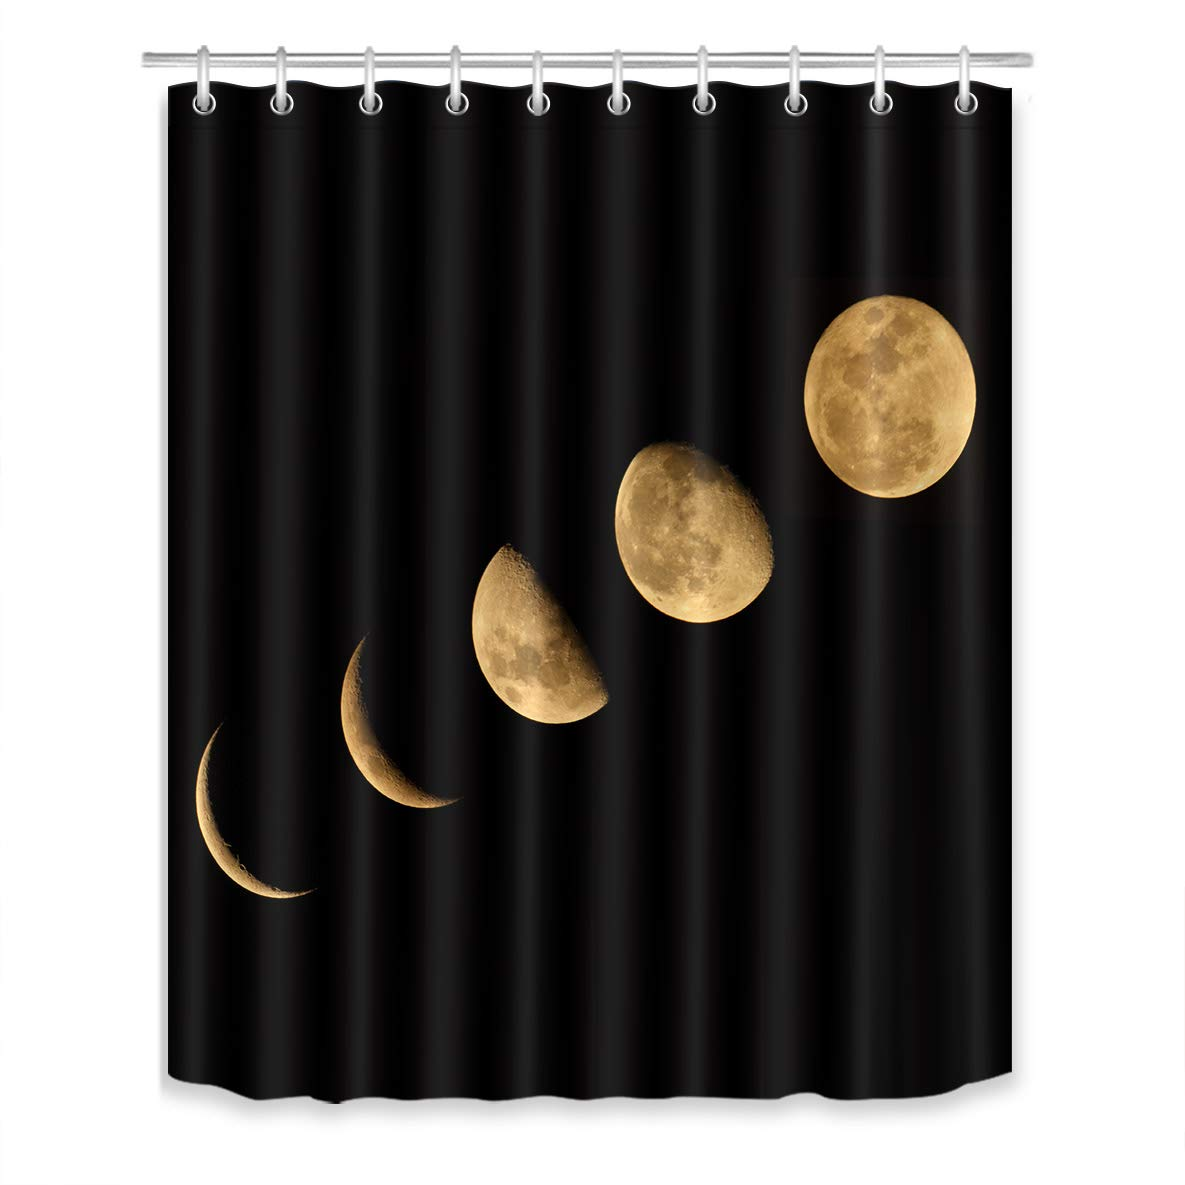 LB Moon Phase Shower Curtain Set,Nature Lunar Eclipse Solar System Black Bathroom Curtain Decor Polyester Fabric Bath Curtain with Hooks,Mildew Resistant Waterproof 60x72 inch